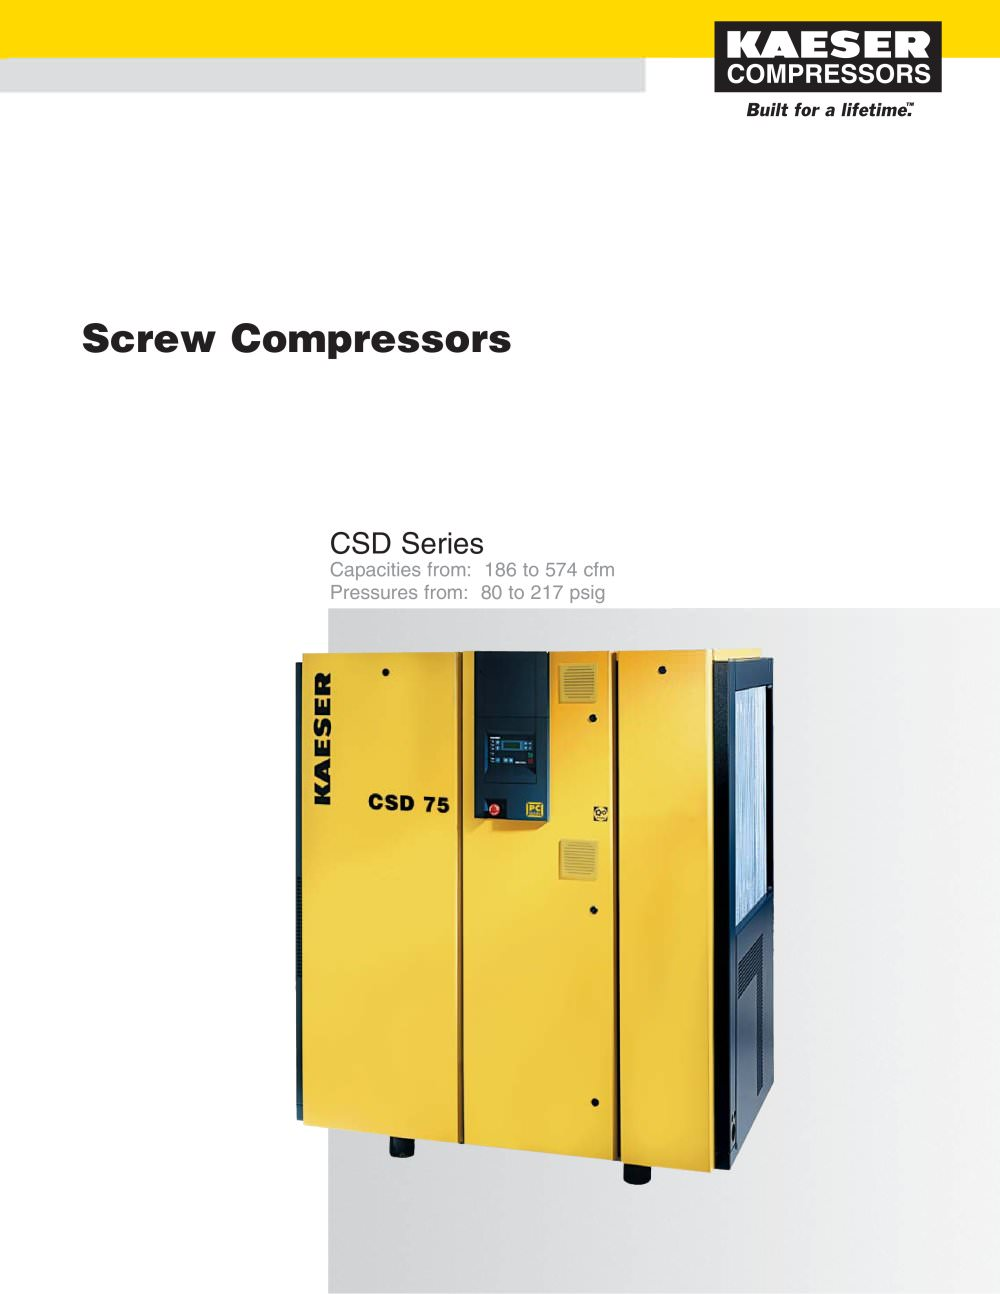 CSD Series Compressors - 1 / 6 Pages